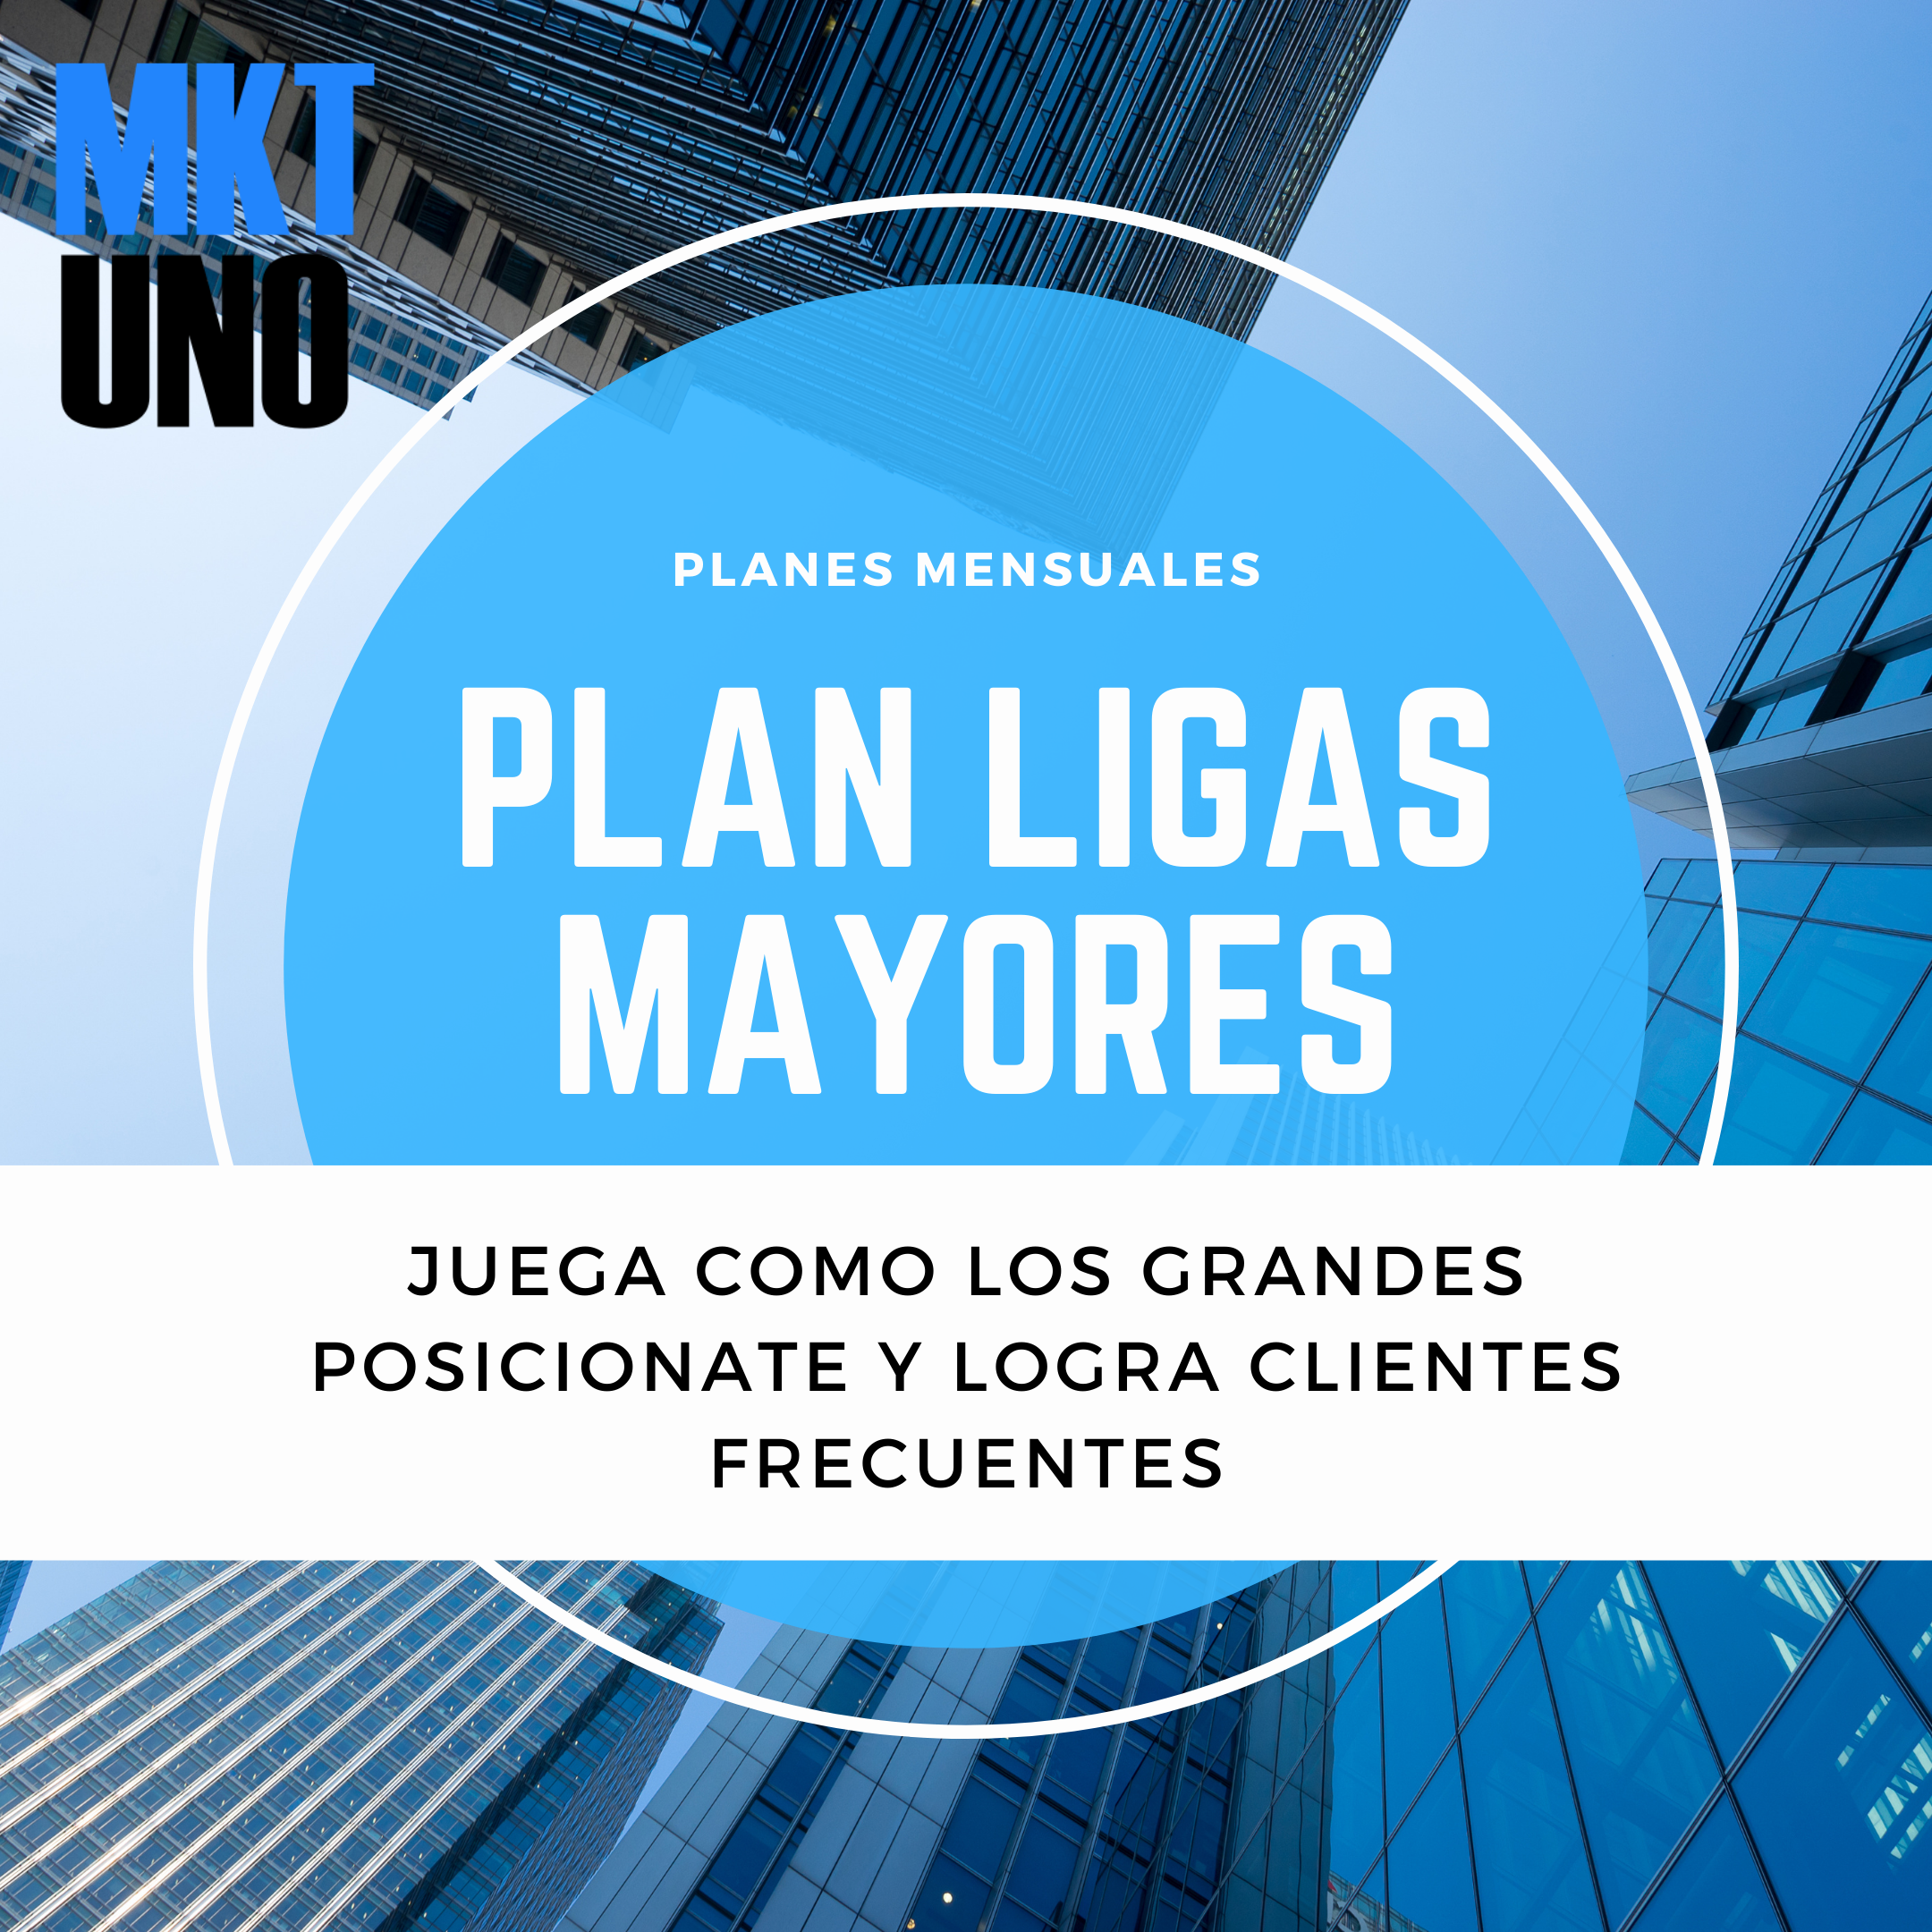 marketinguno, mktuno, agencia de marketing y publicidad, agencia digital, plan ligas mayores, agencia creativa